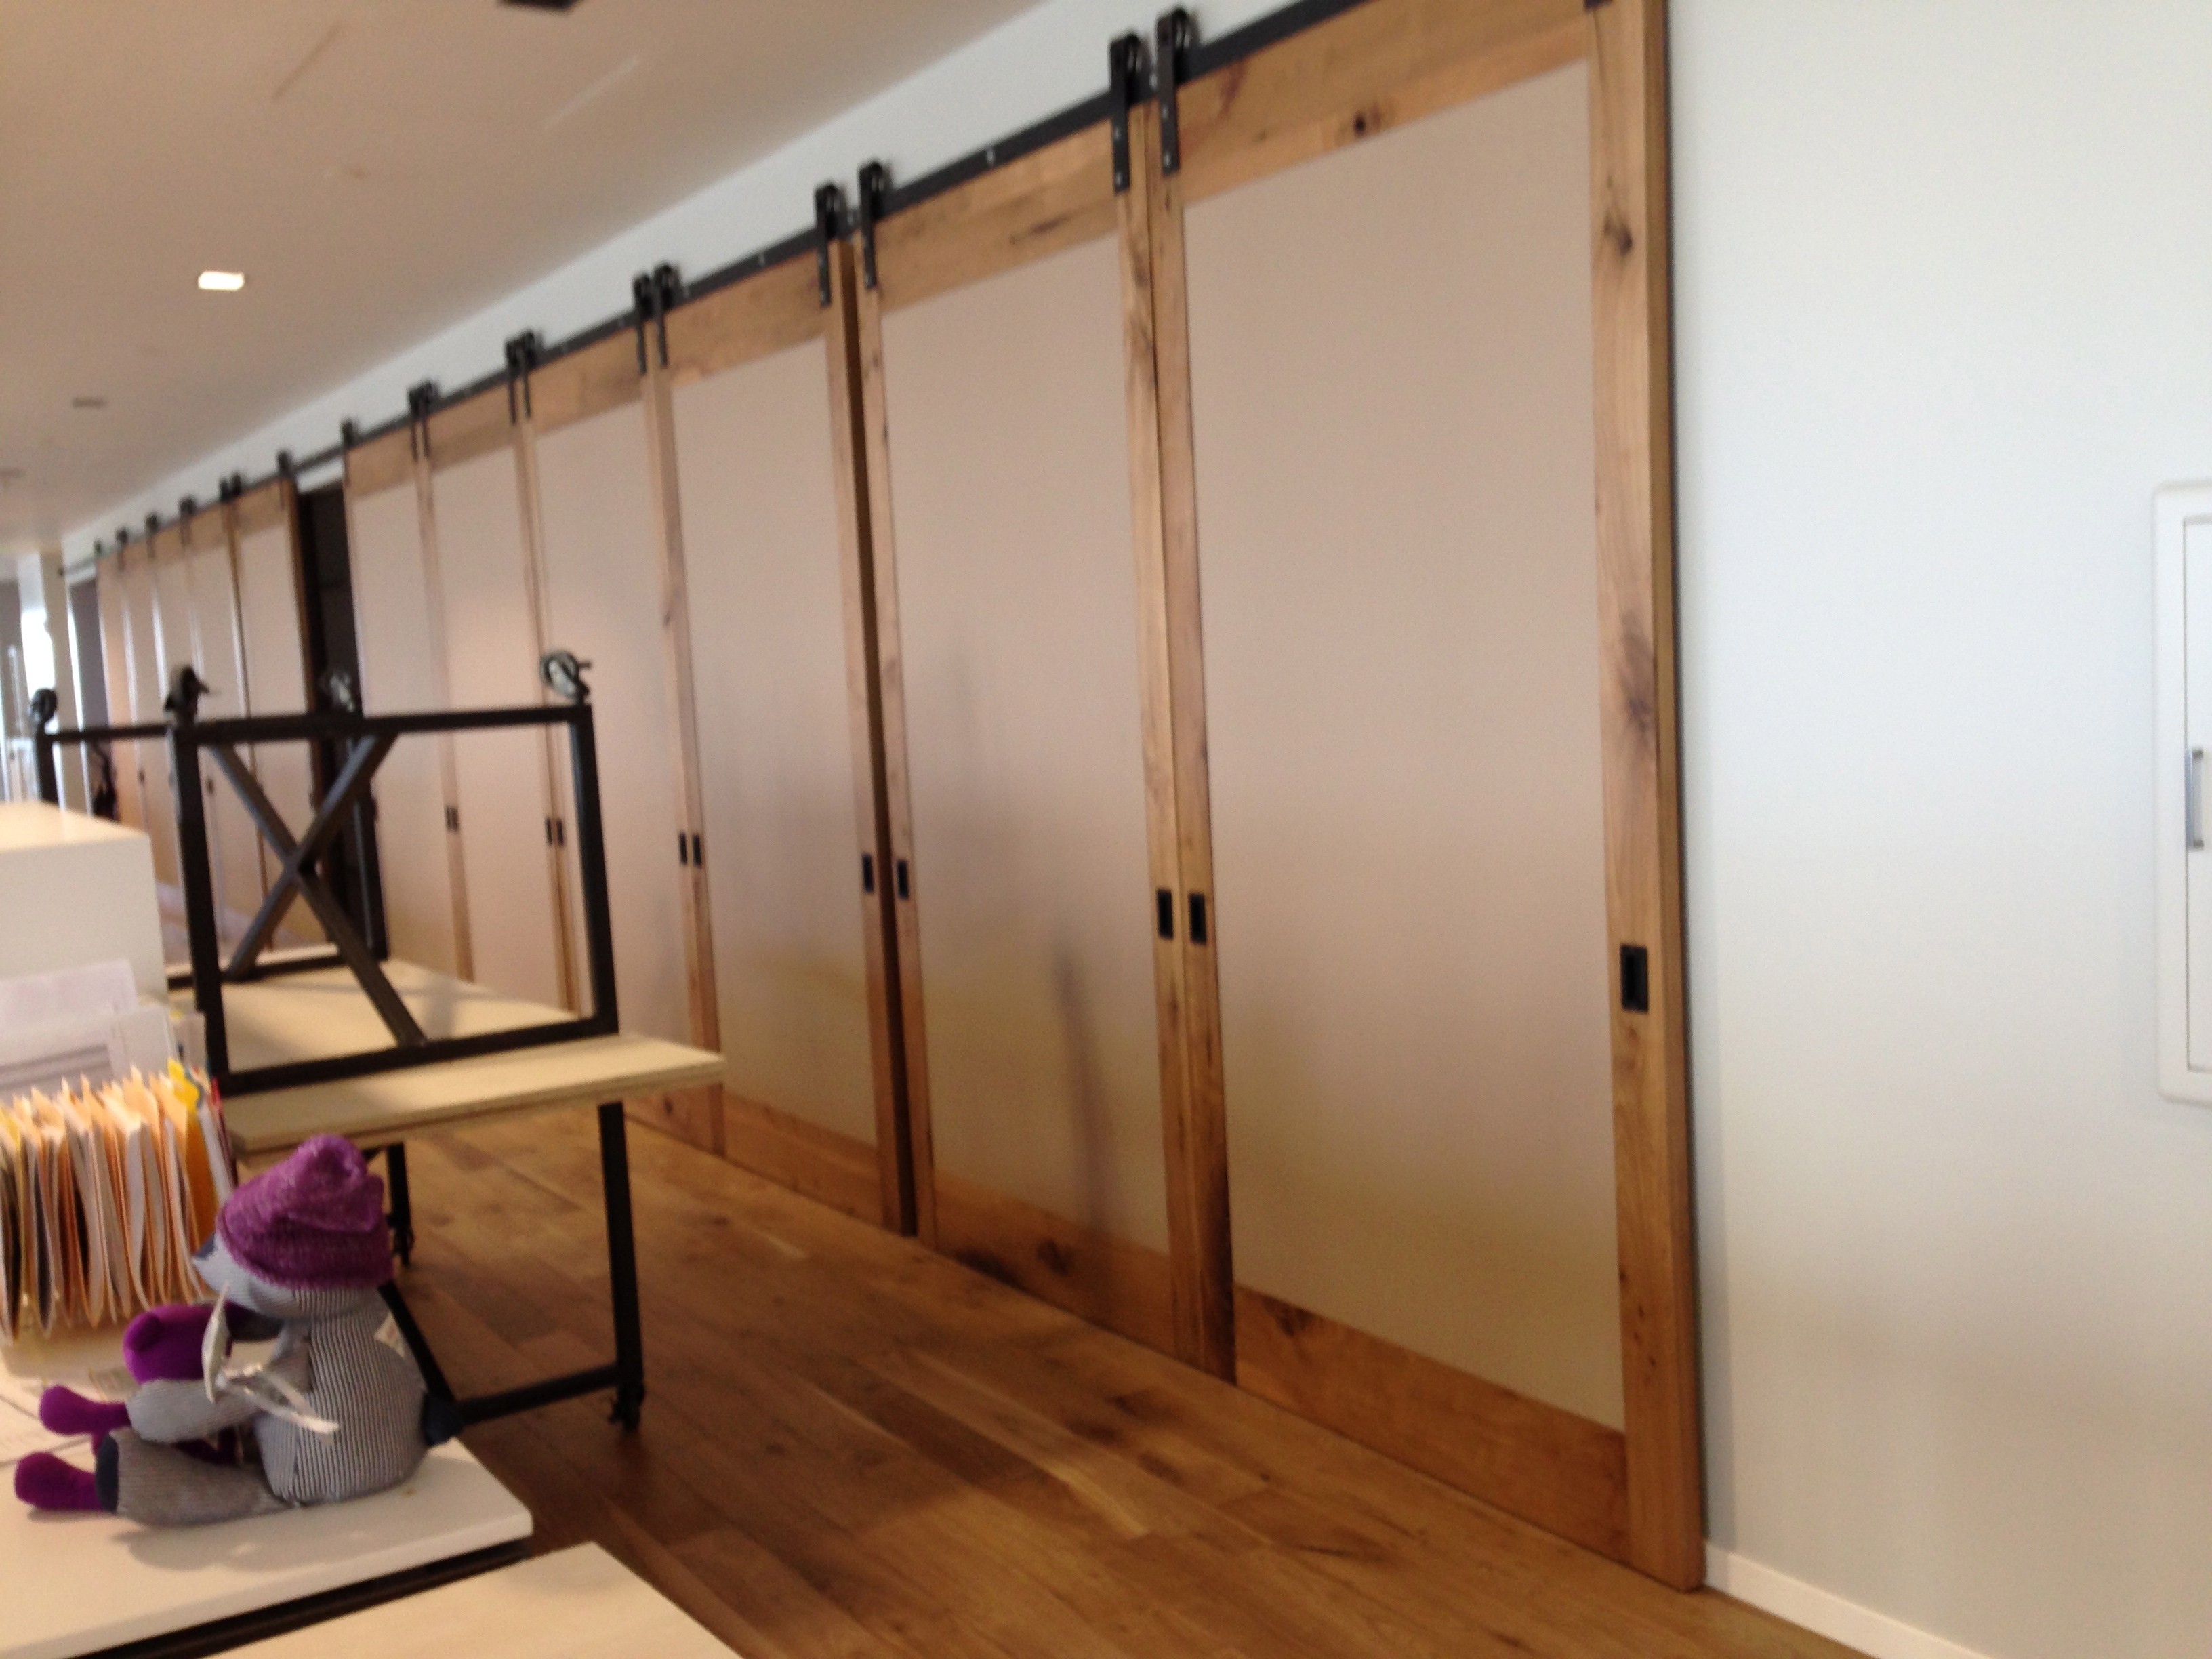 Sliding Barn Door Partitionsdoor partition remarkable 20 architectural room partition sliding